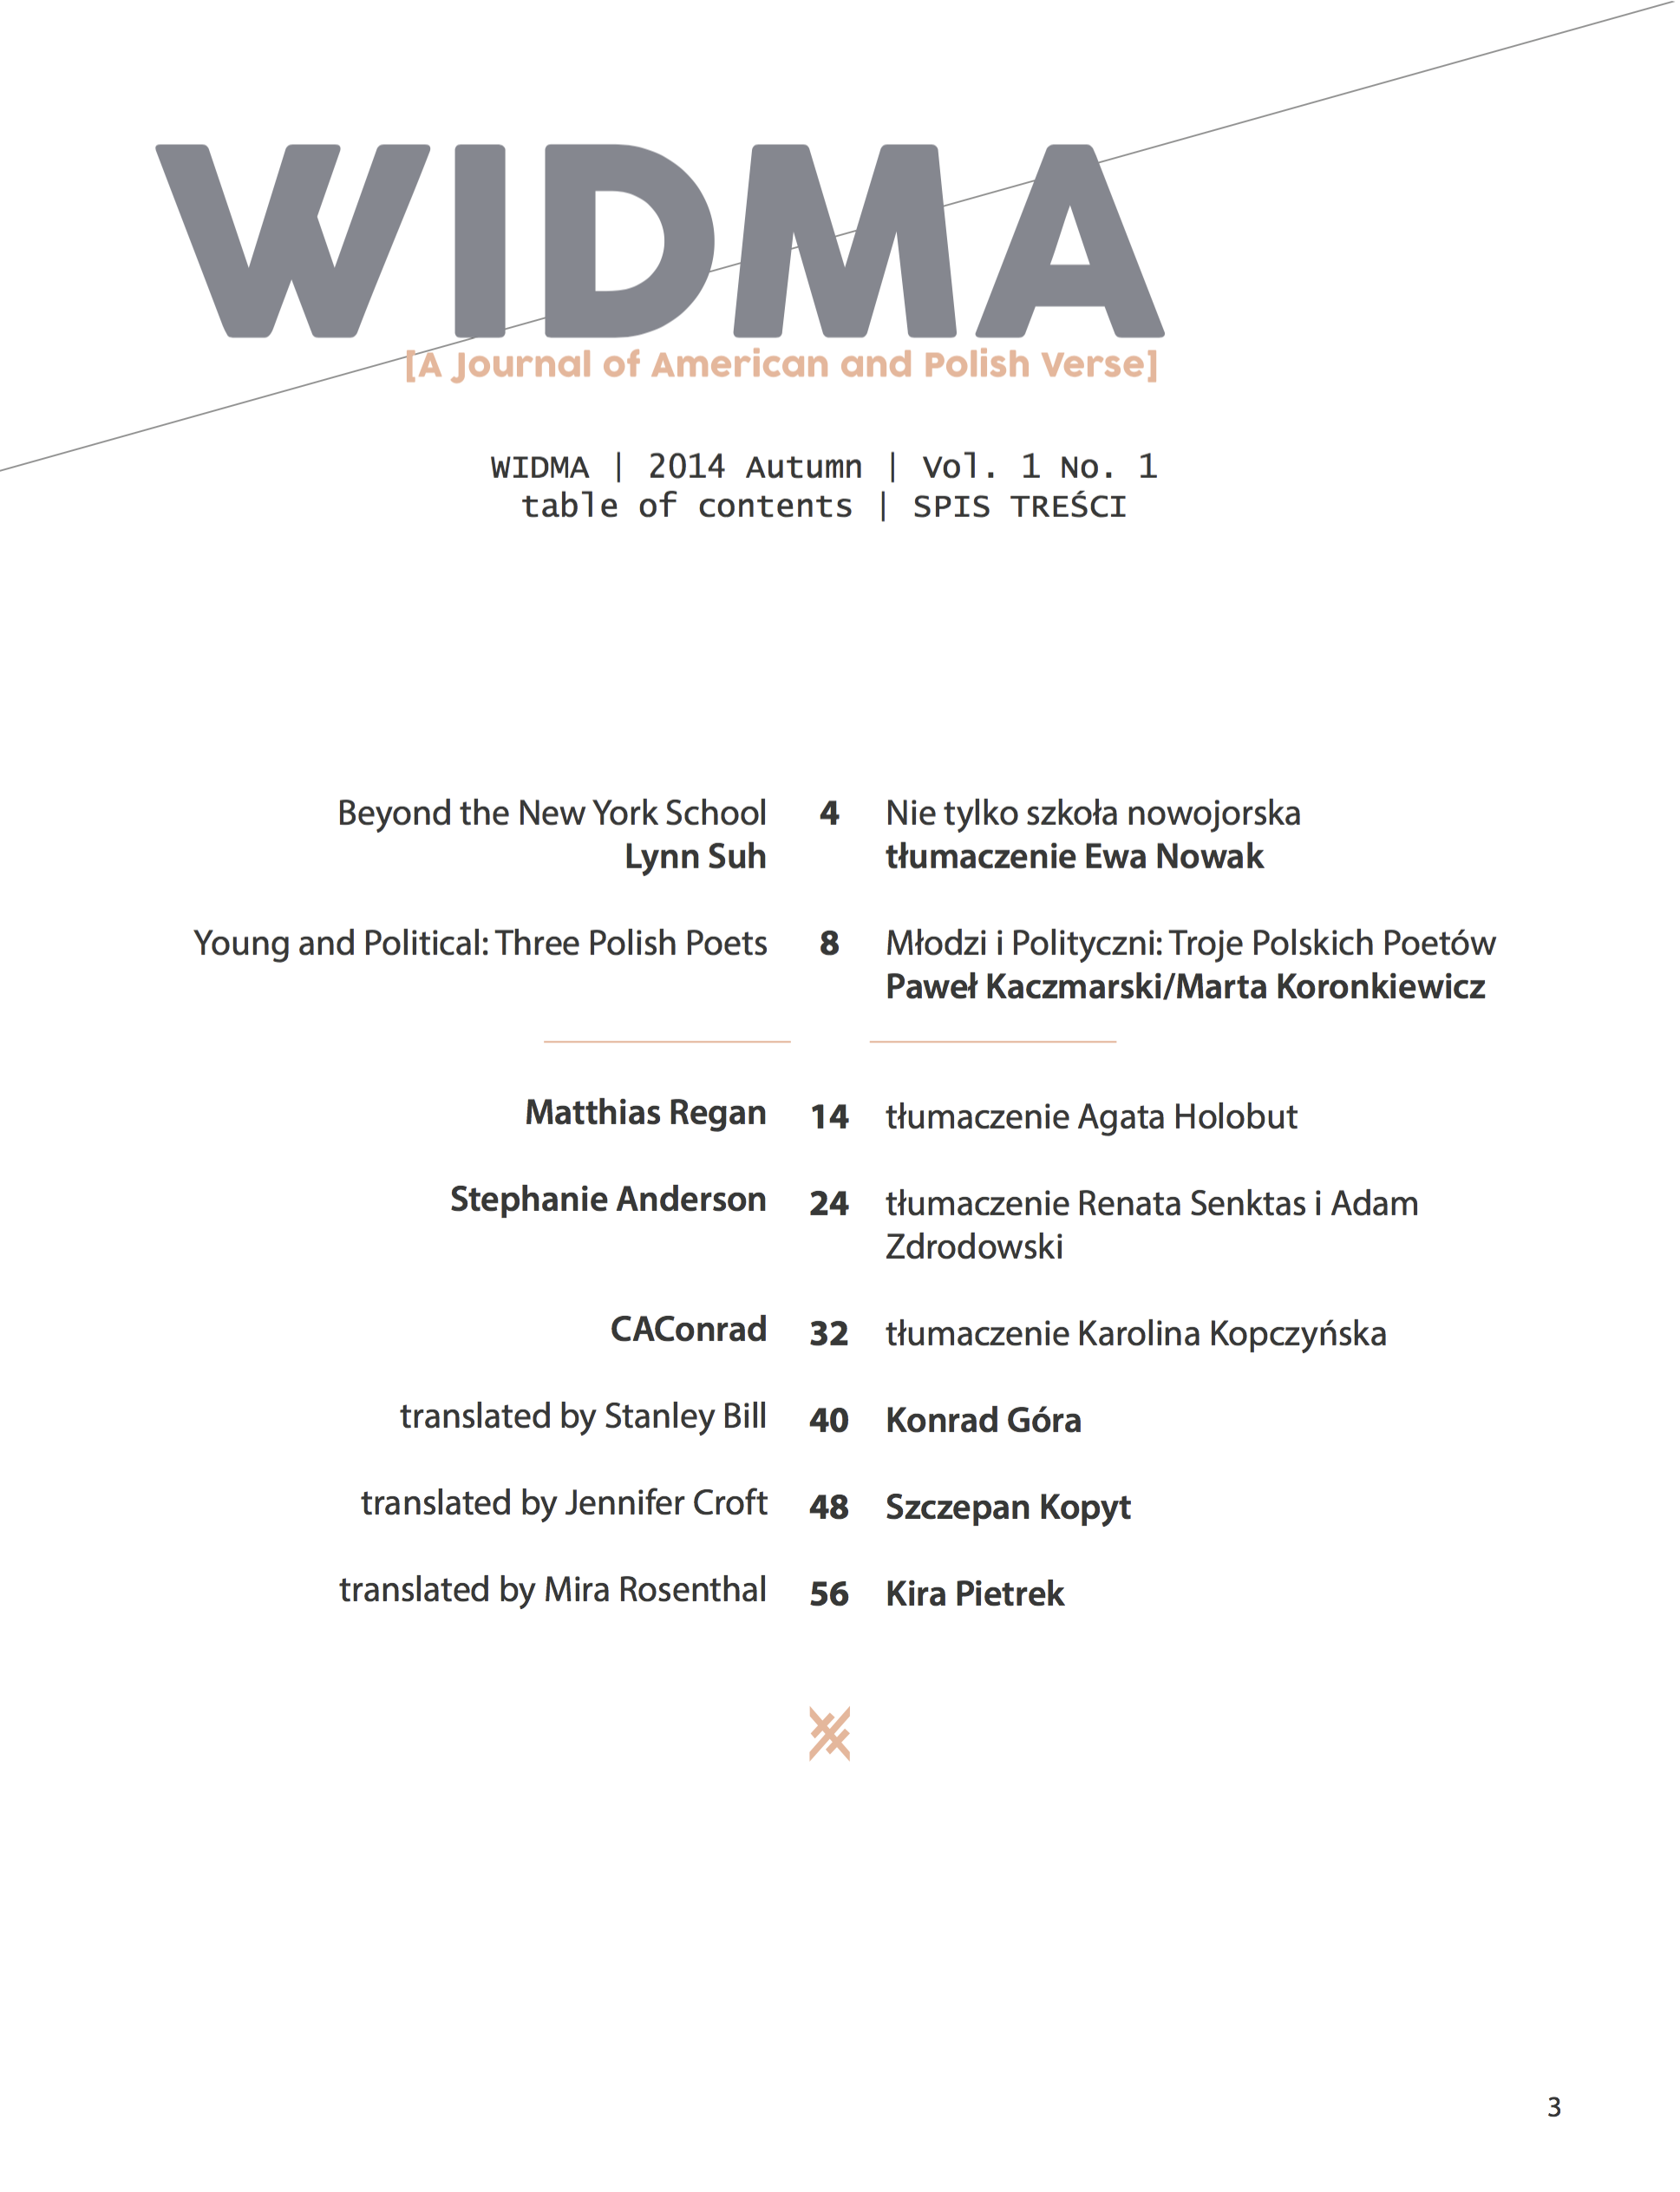 Widma vol.2, no.1. Page 2.